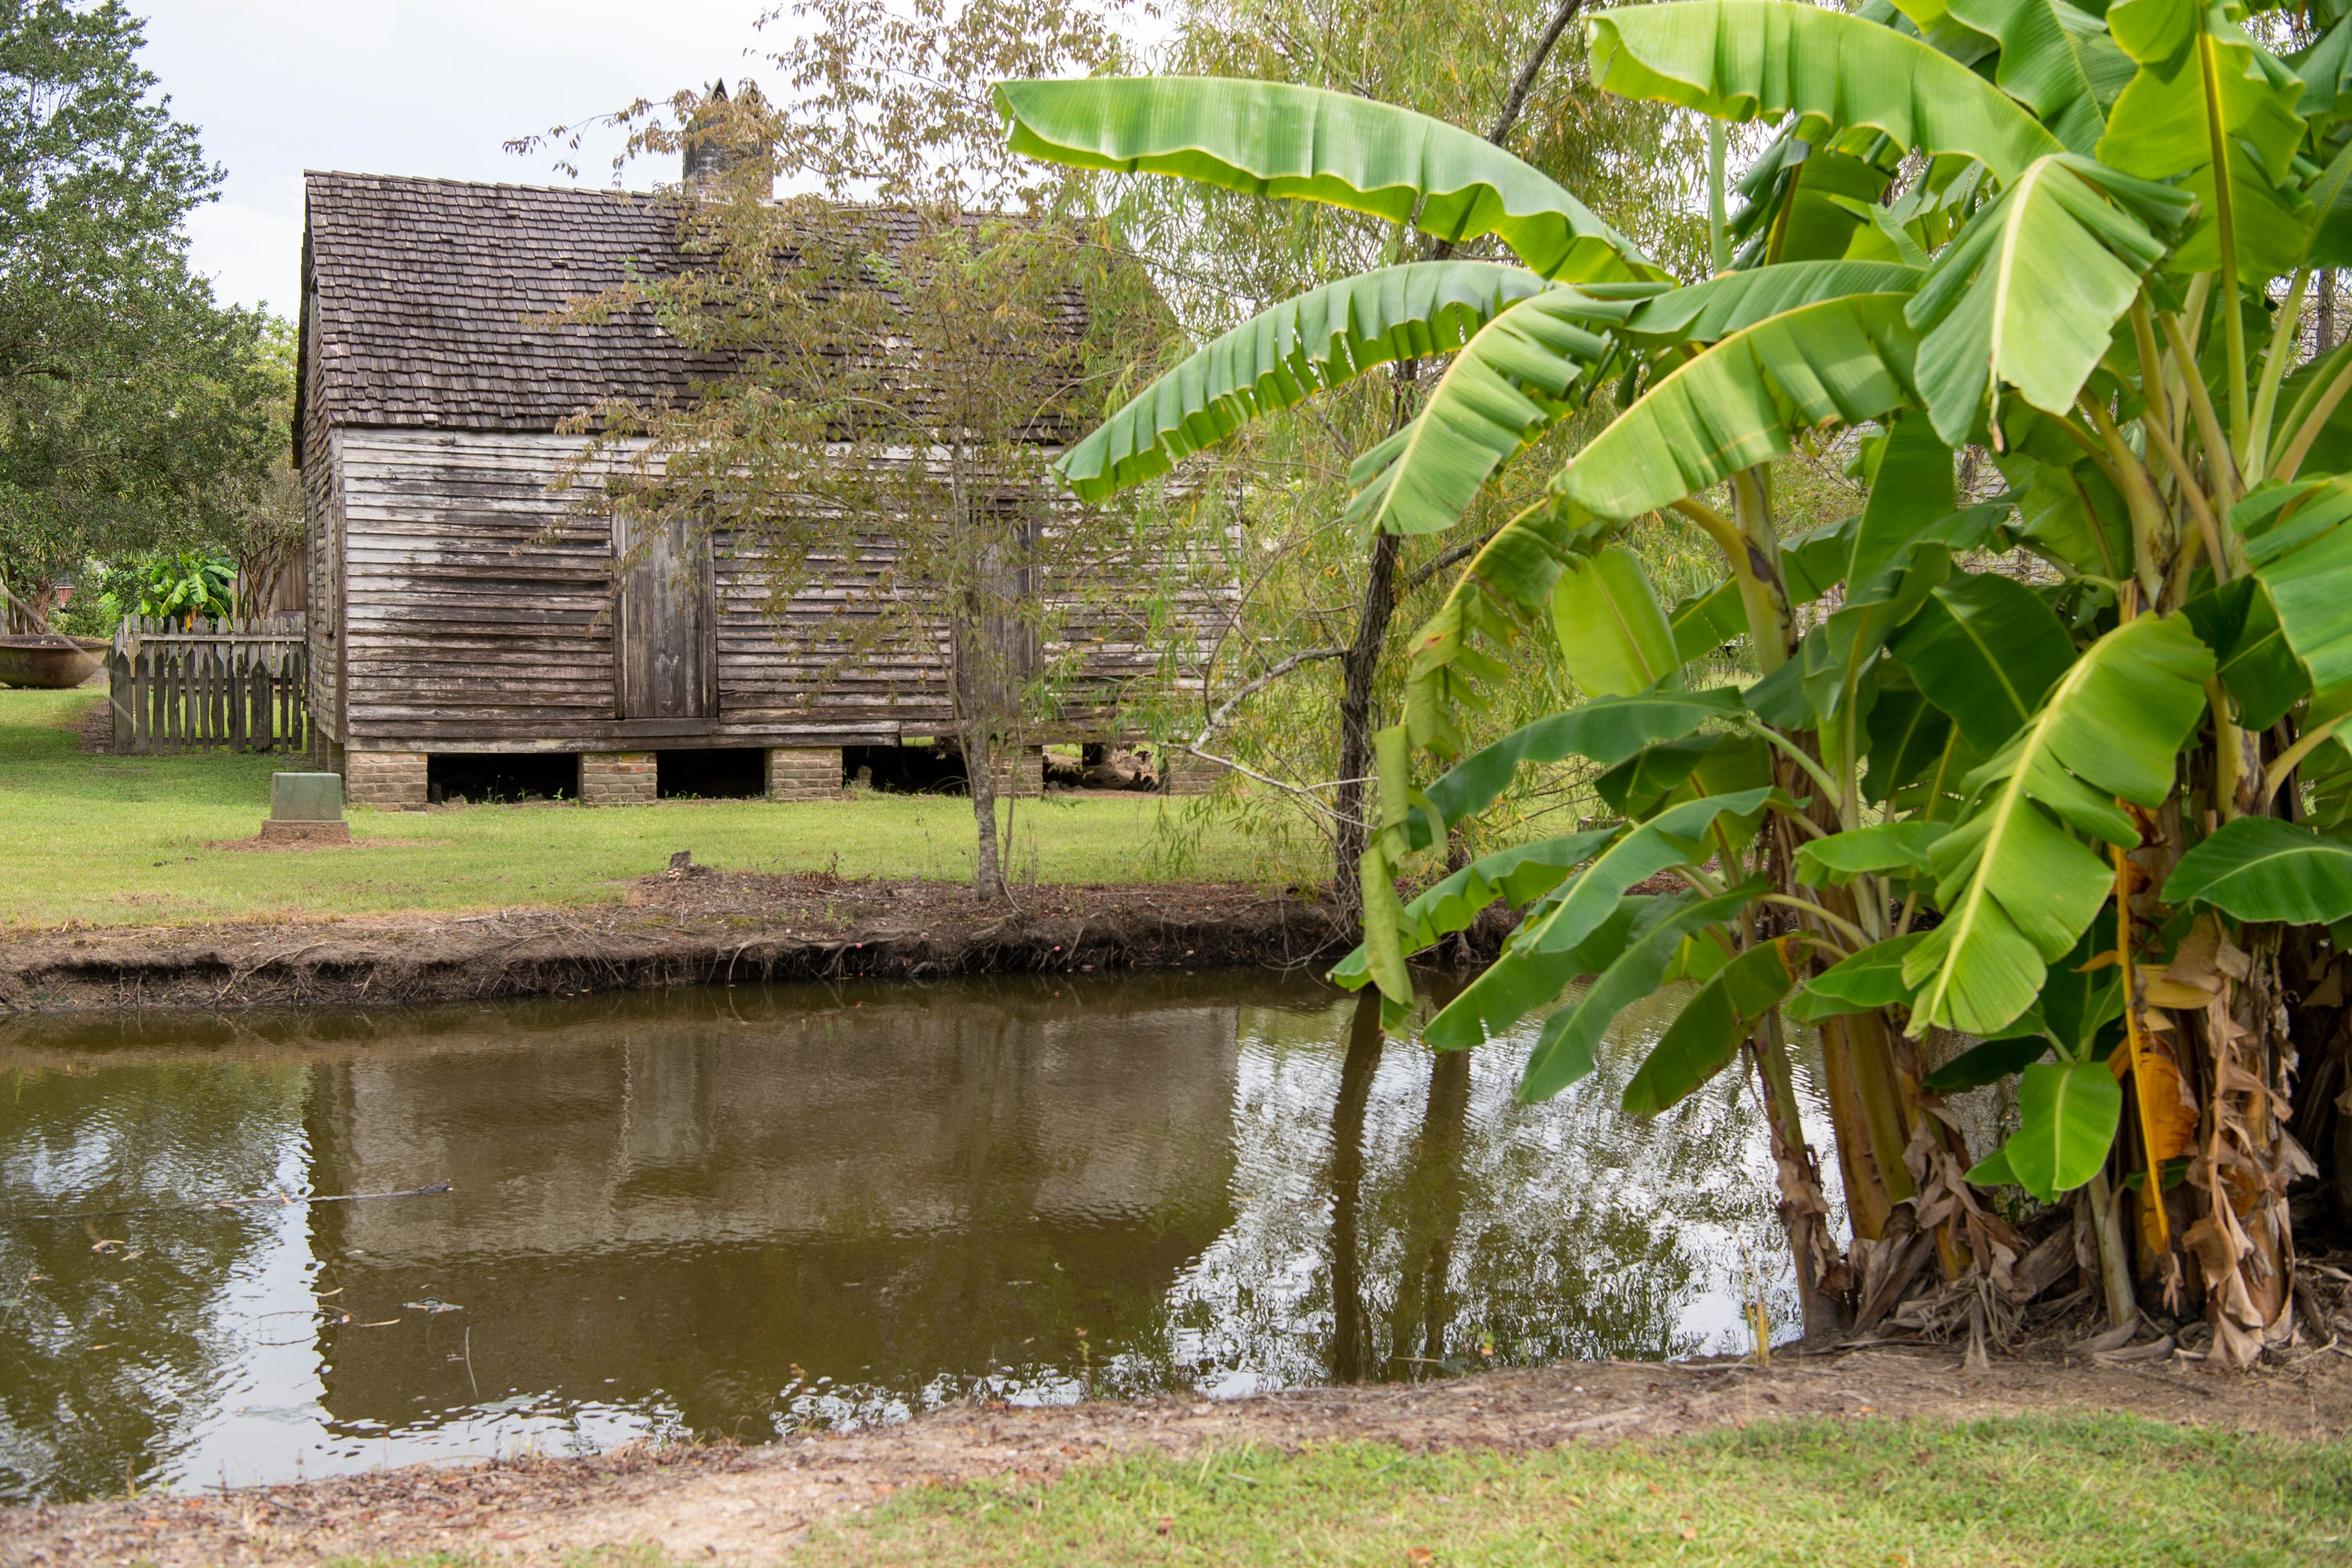 One of seven slave dwellings sits beside a drainage canal at the Whitney Plantation Museum in Wallace, La. The plantation originally had 22 such dwellings.